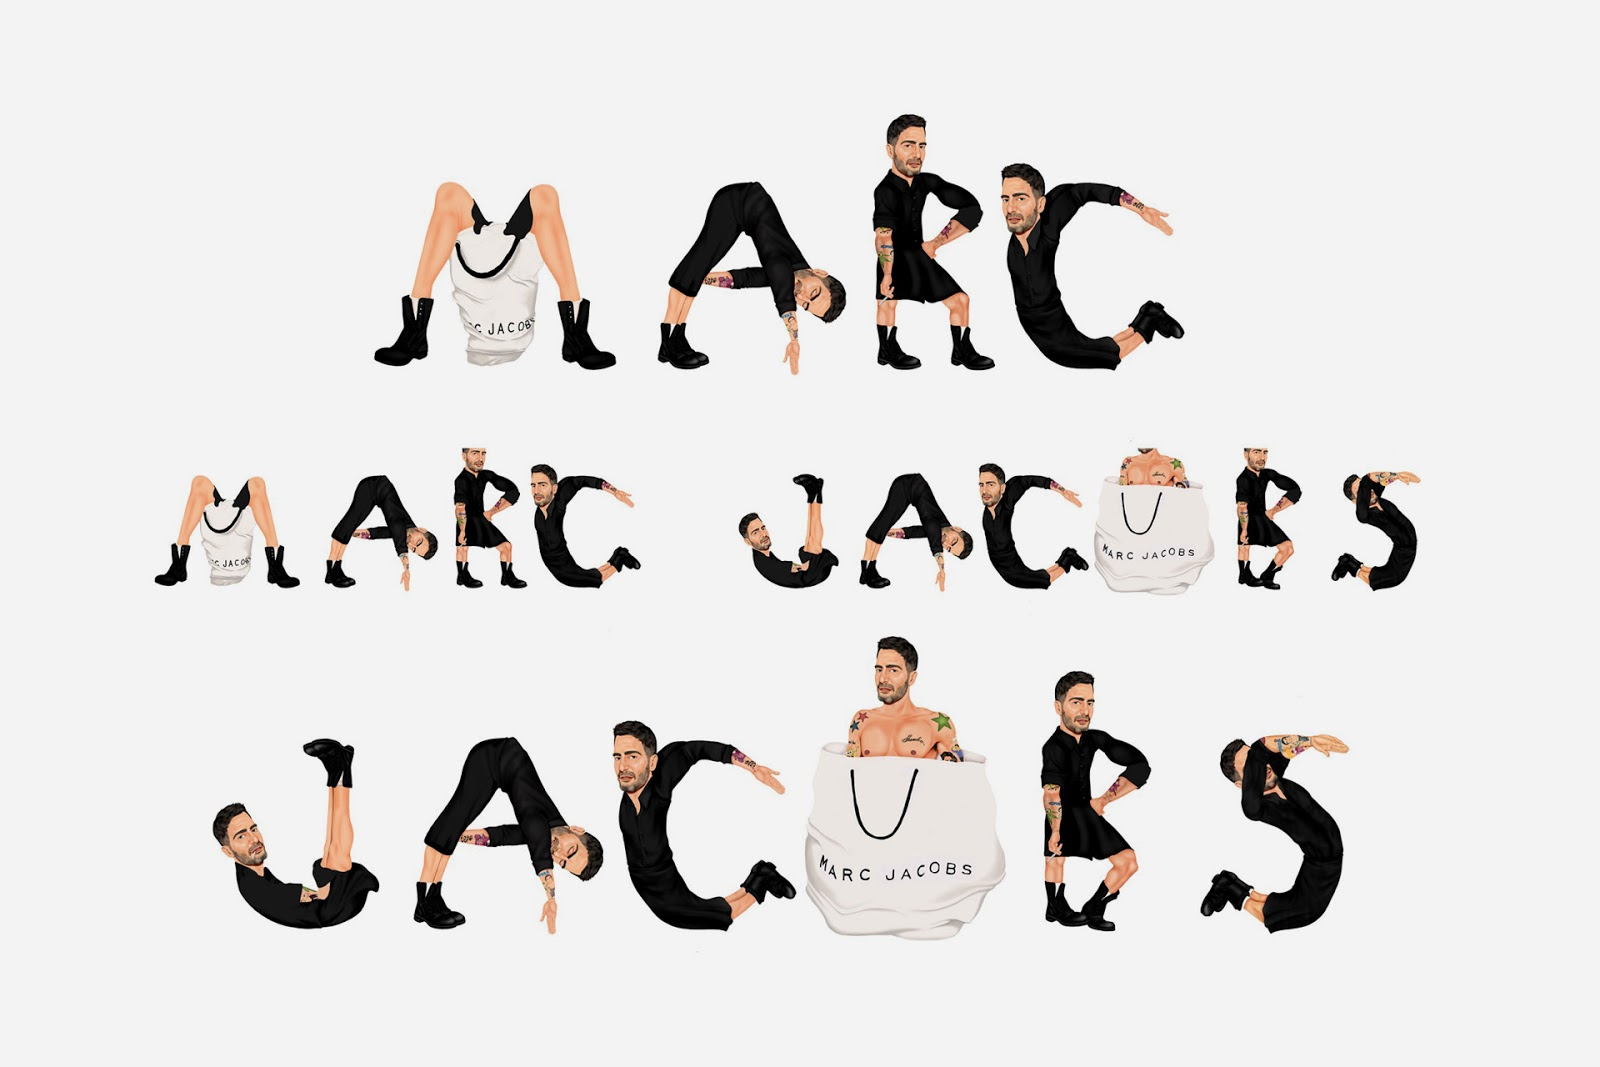 Marc Jacobs logo by Mike Frederiqo